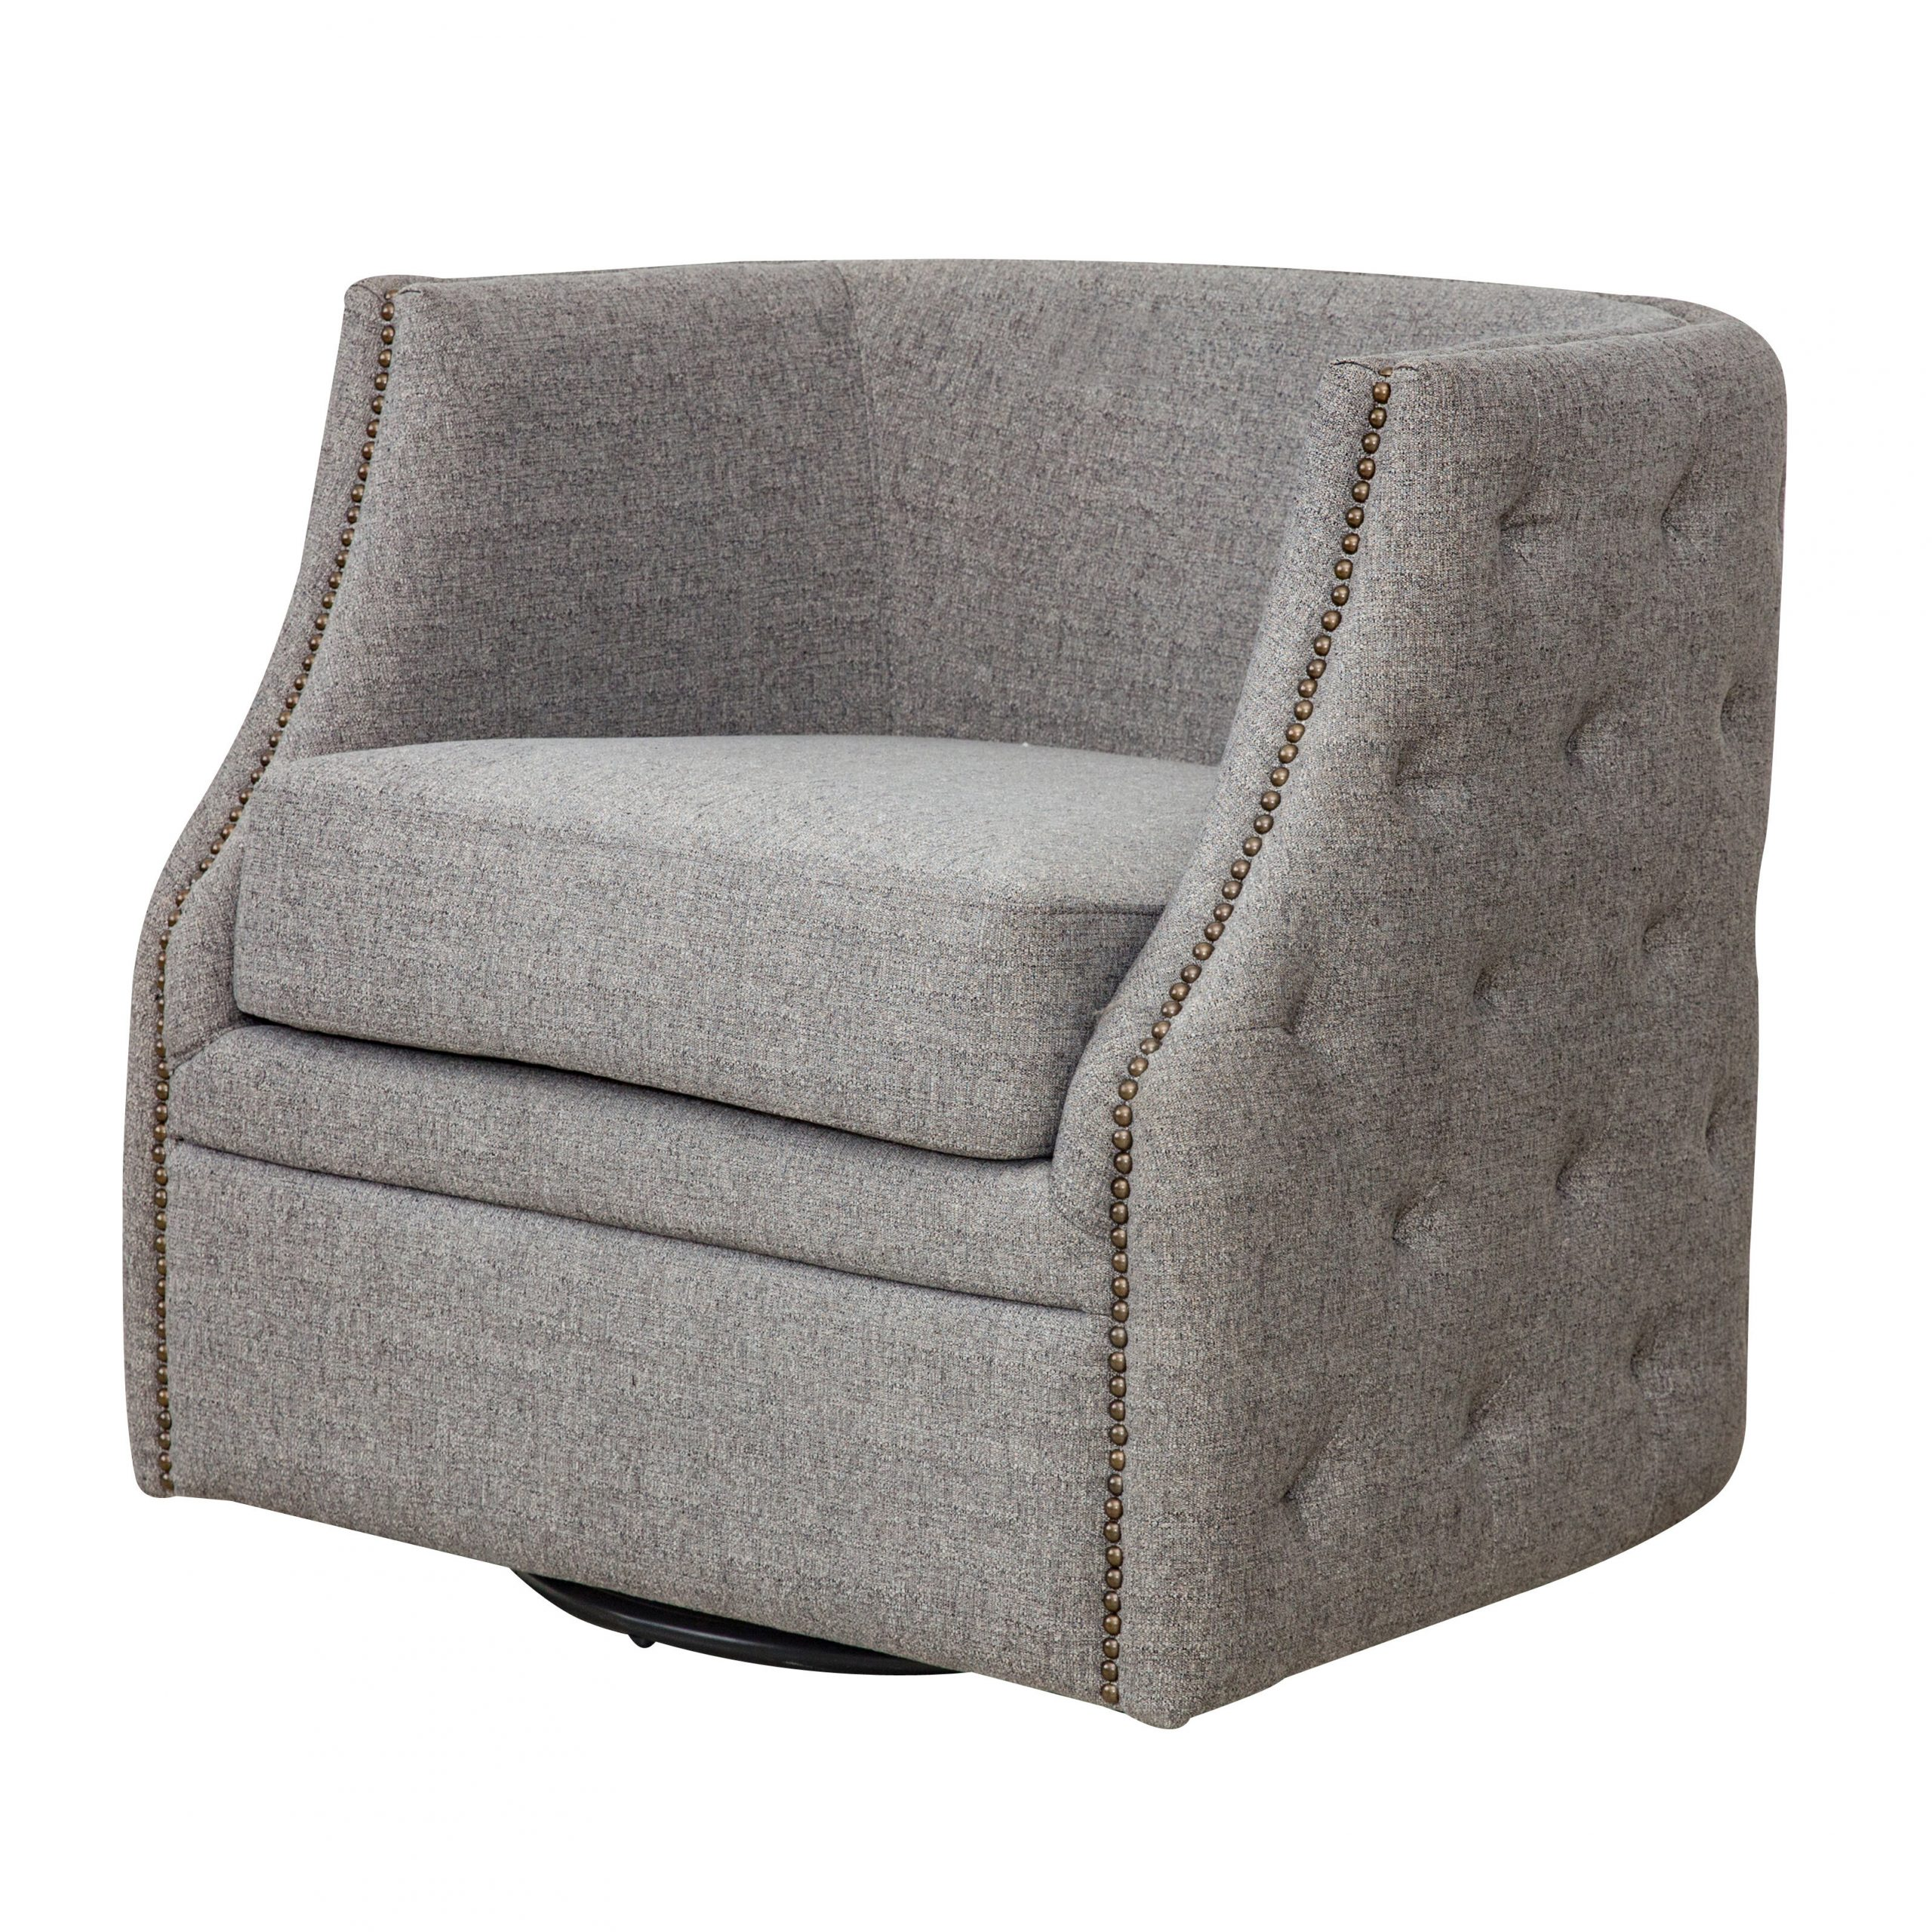 Dichiera Swivel Armchair In Vineland Polyester Swivel Armchairs (View 7 of 15)